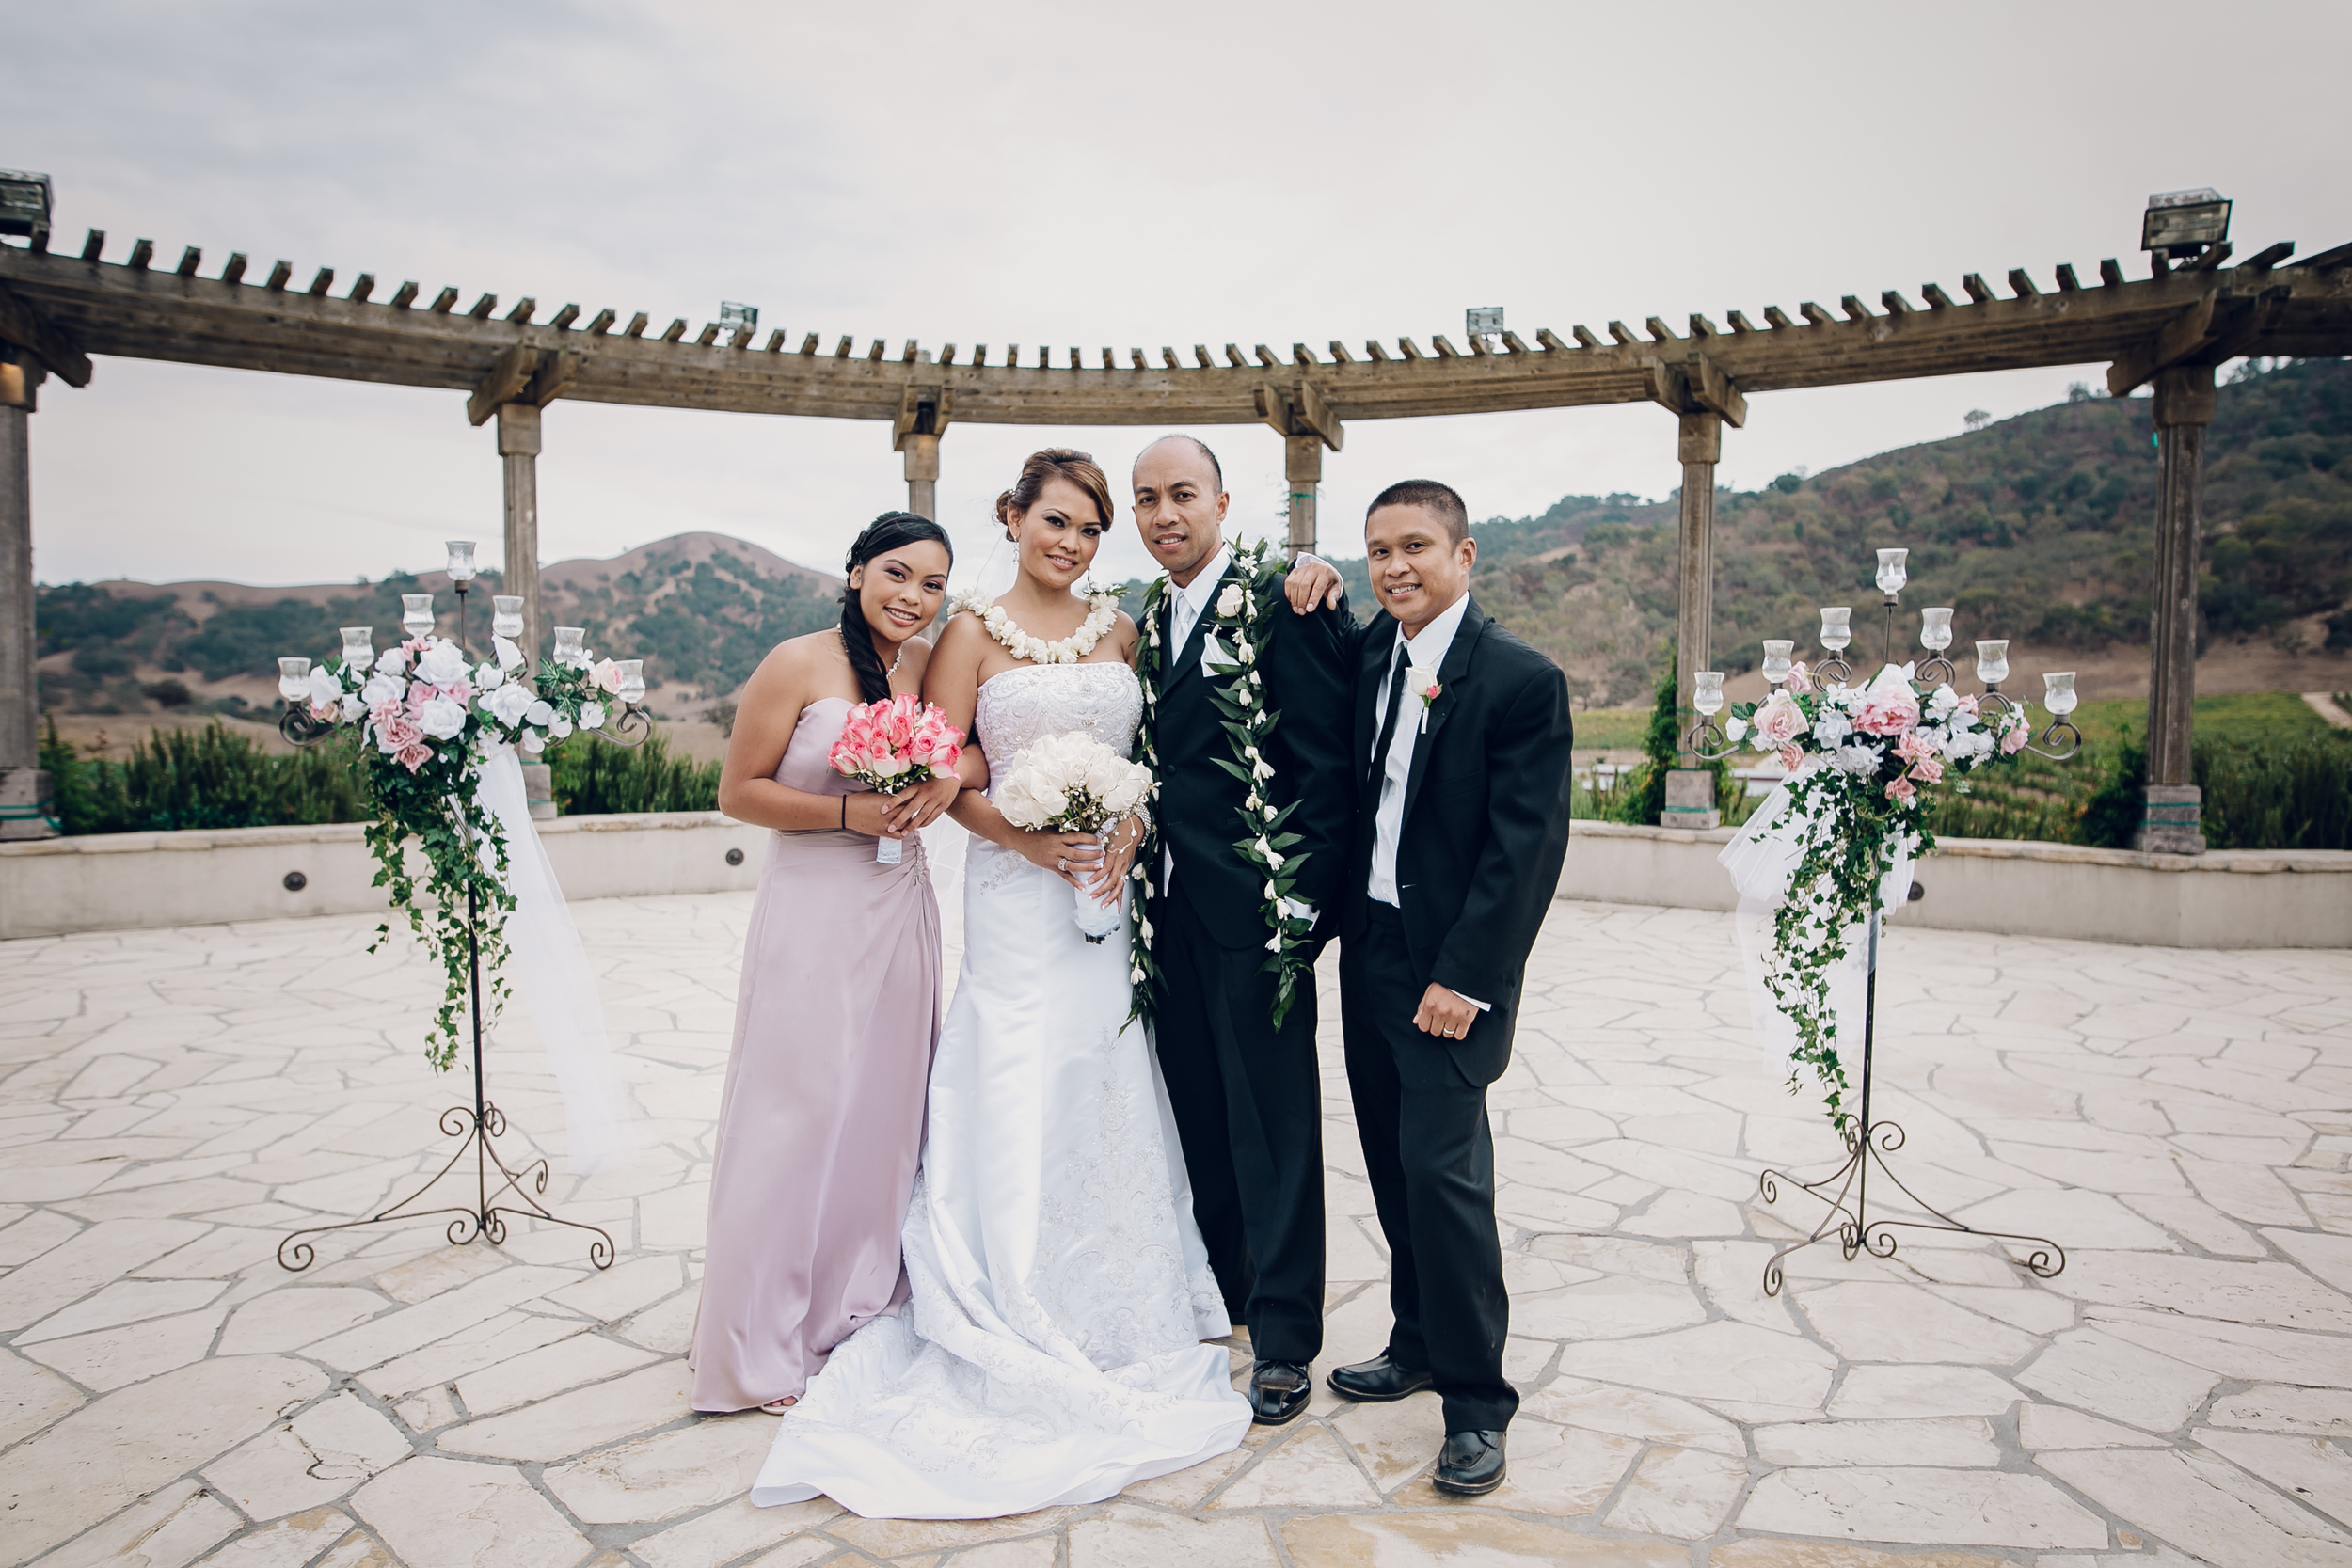 Shiela + Lester's Wedding 9-30-15 759.jpg